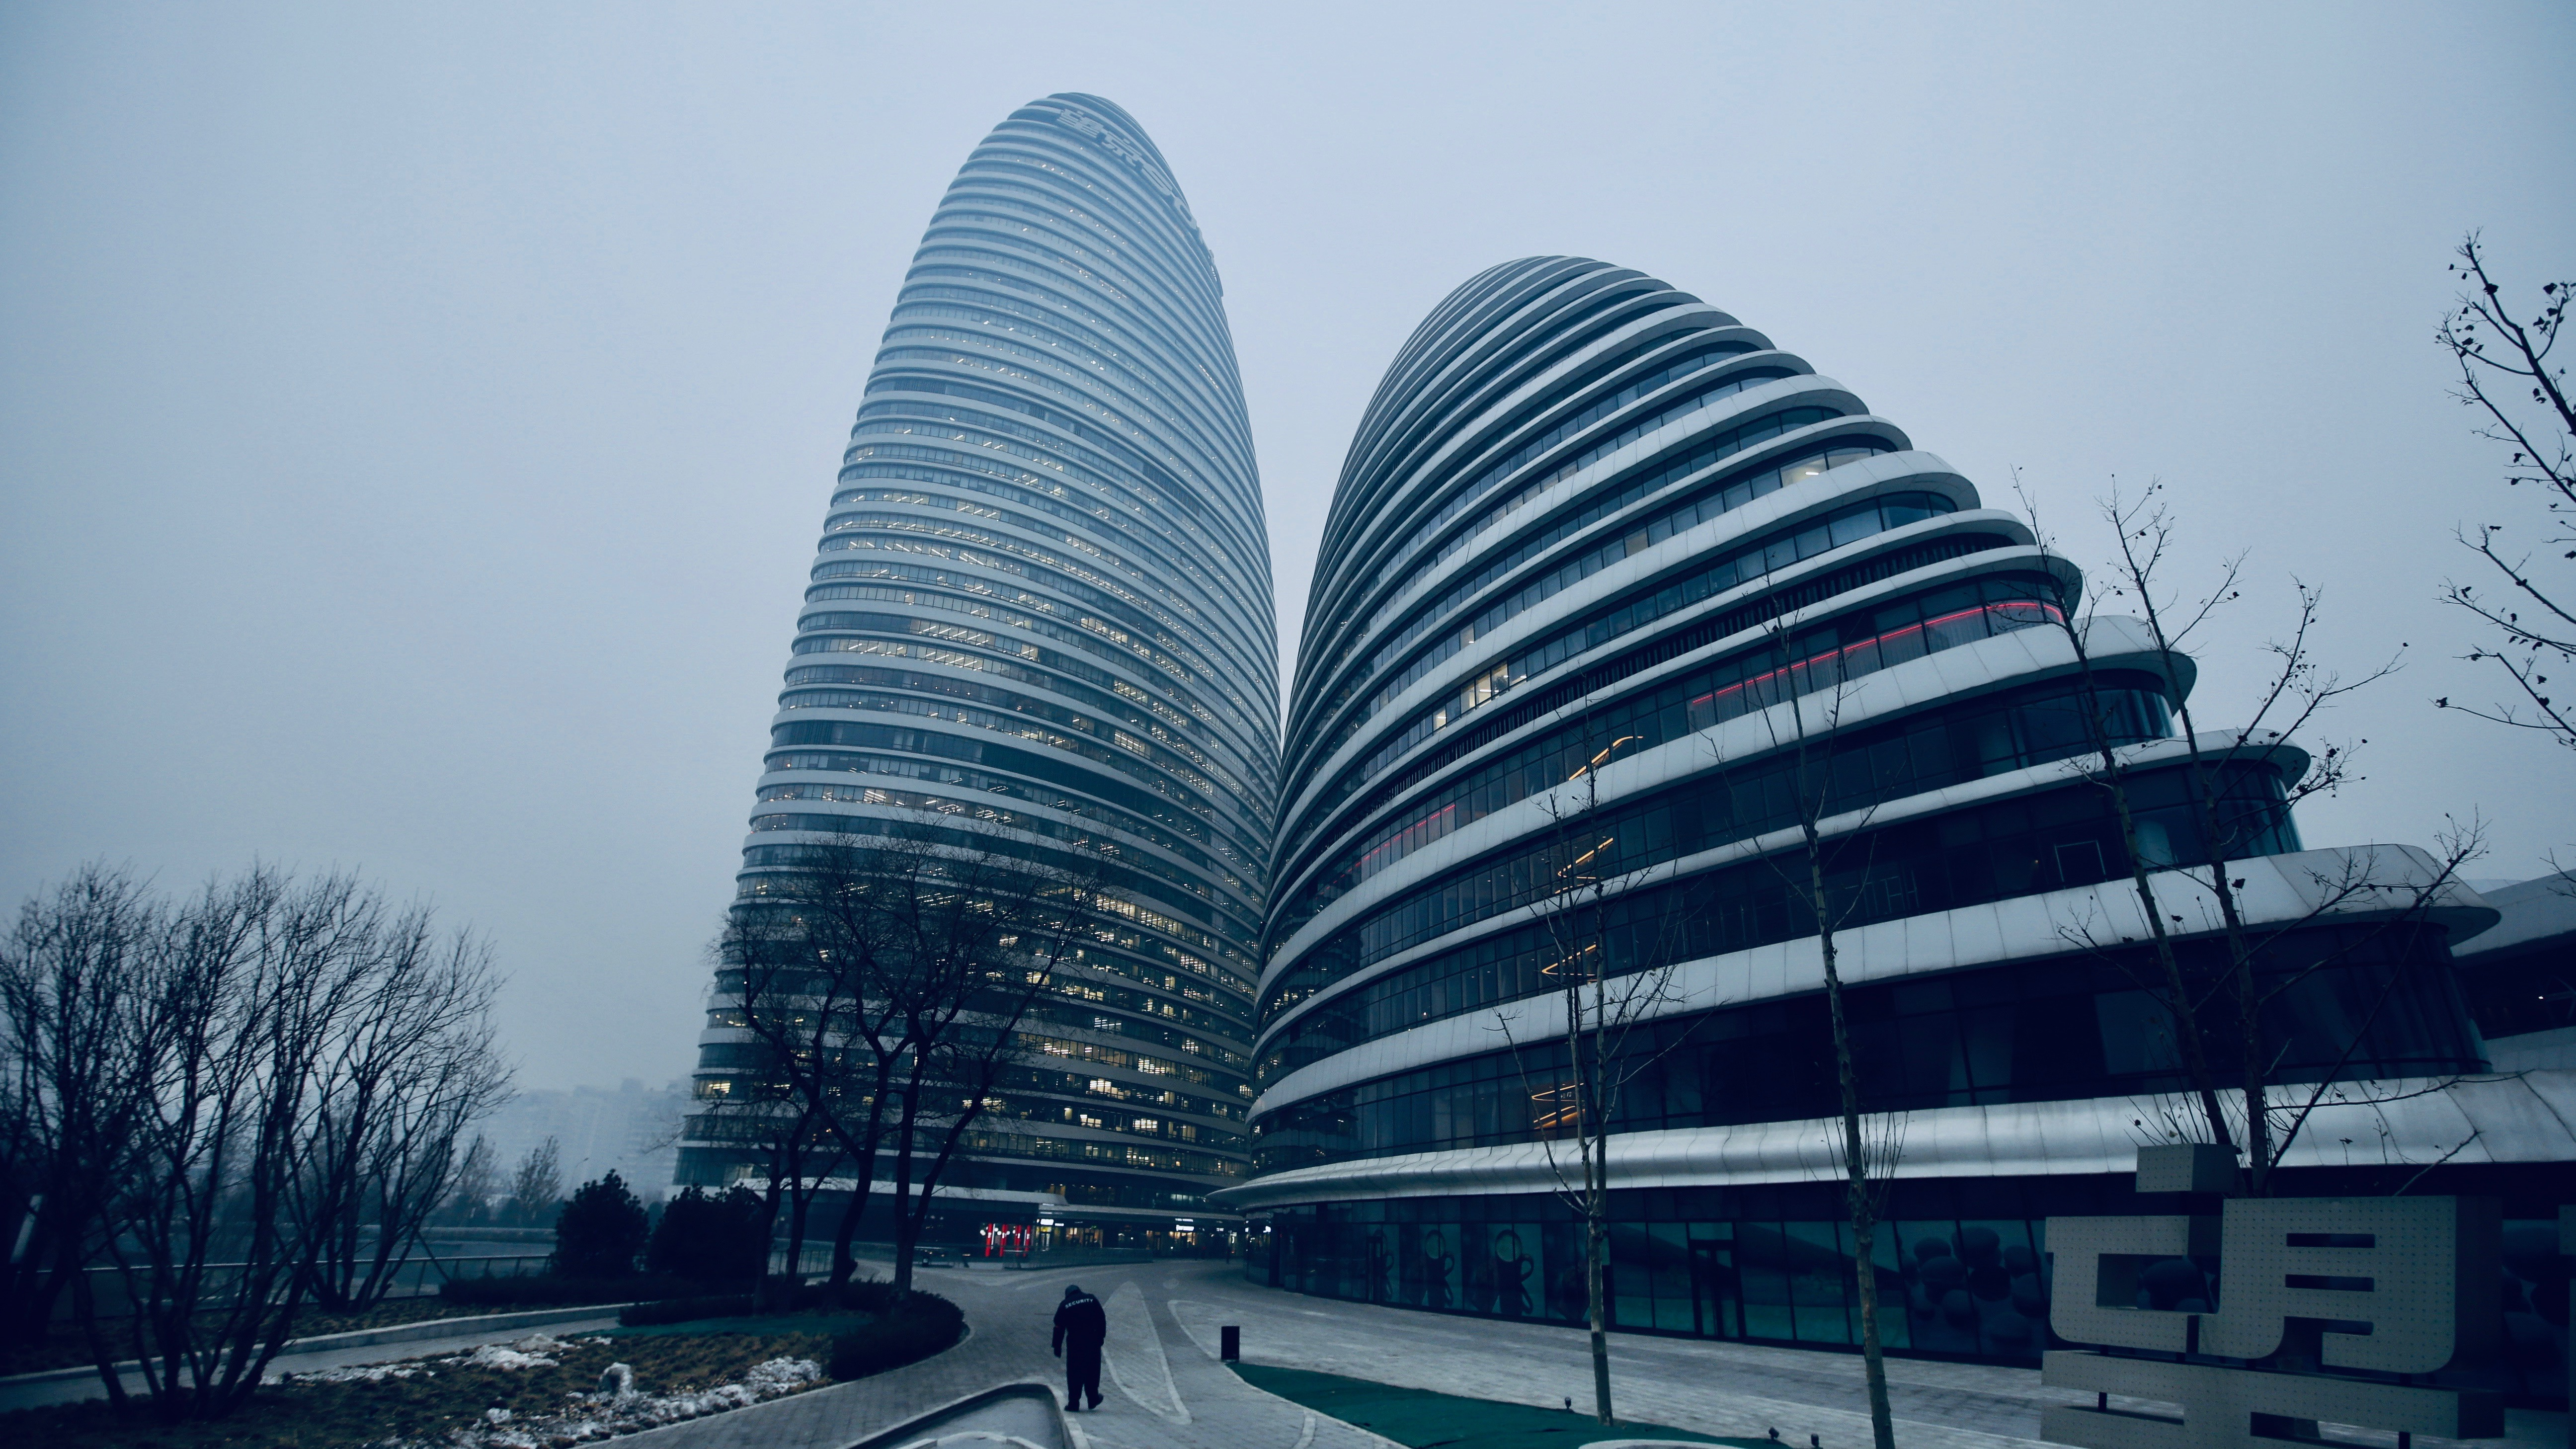 China fines blog $30,000 for criticizing buildings' feng shui